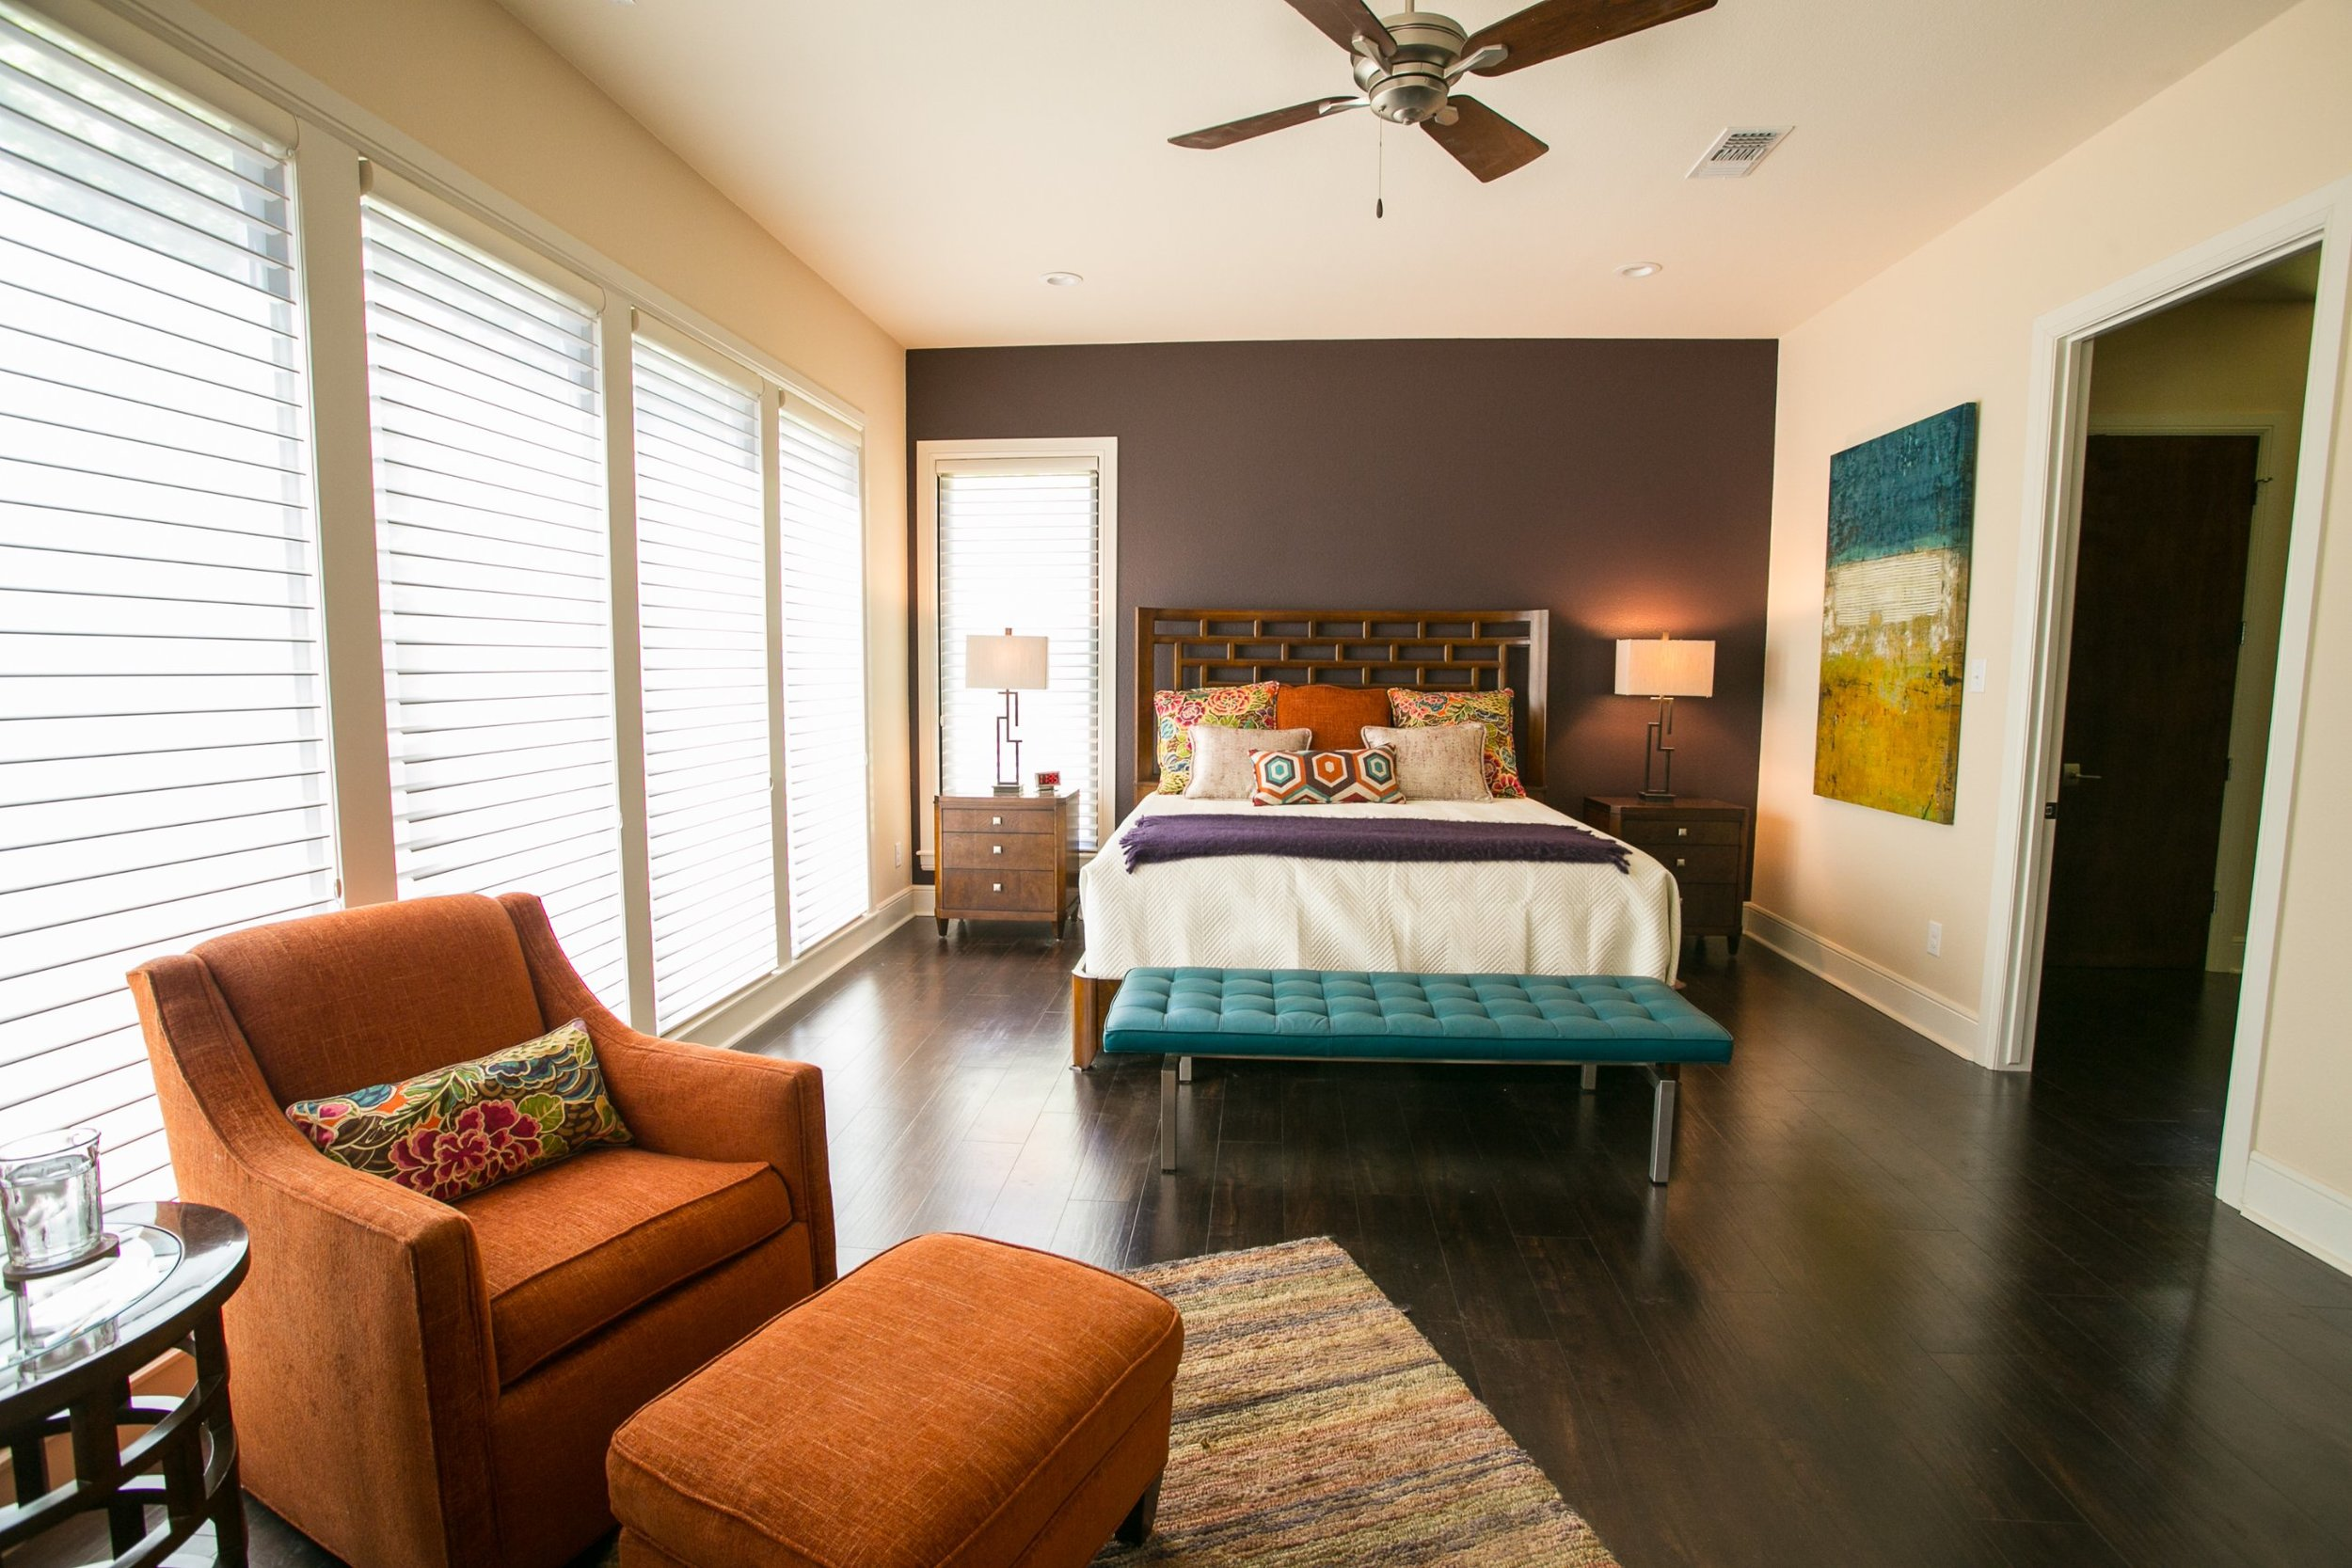 Contemporary master bedroom by Jill Ornelas at Ambiance